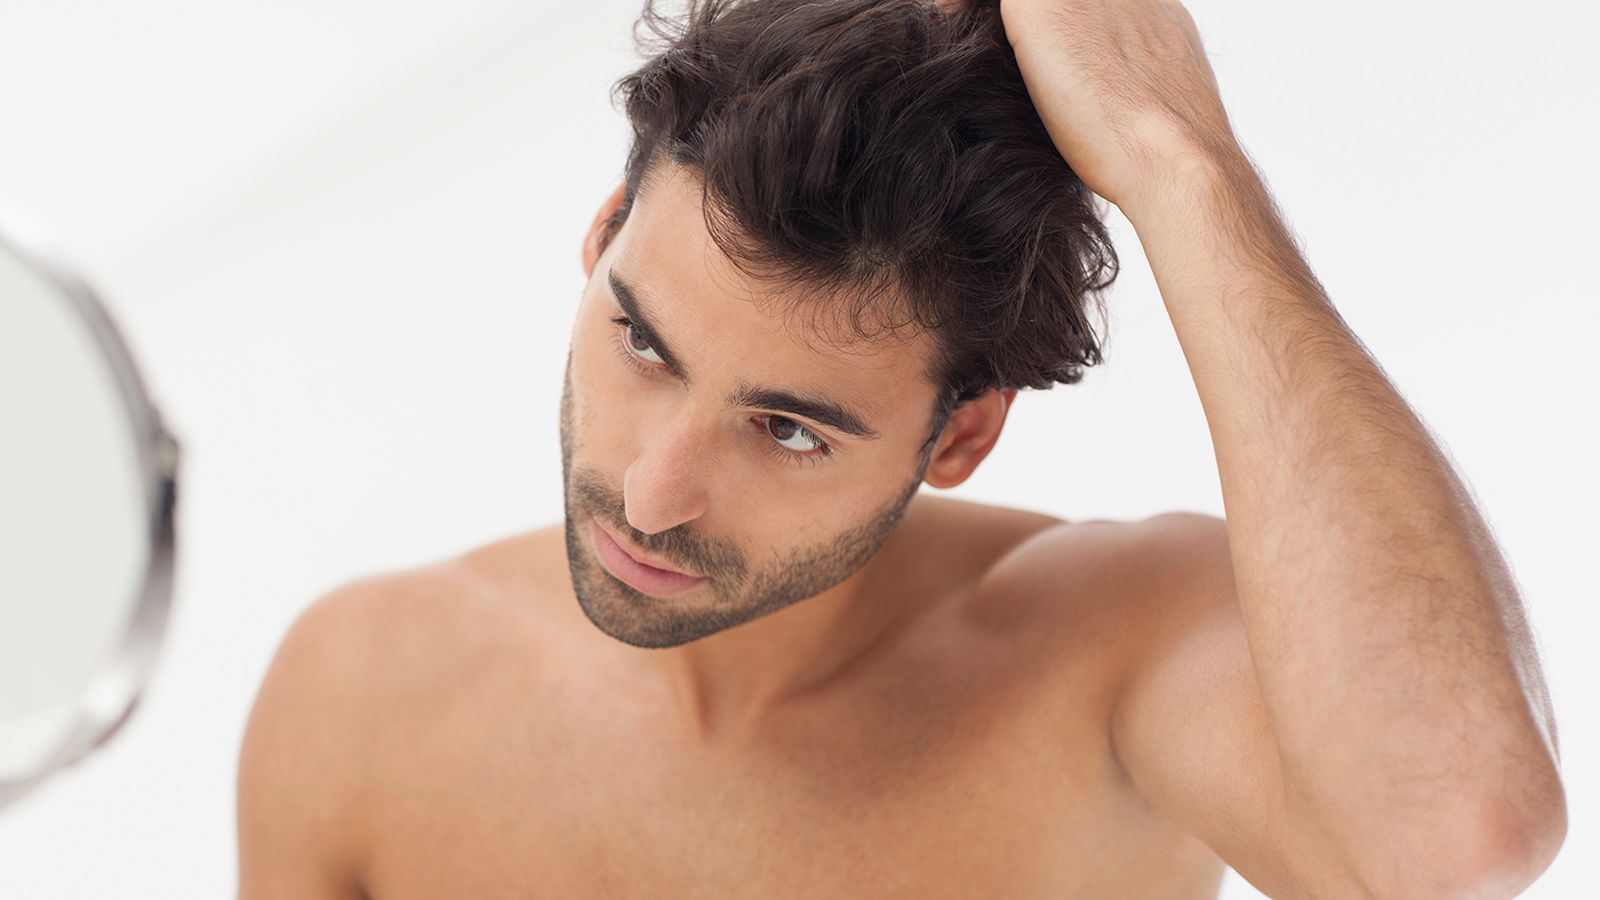 The Secret Psychology Behind Selling Beauty Products to Men